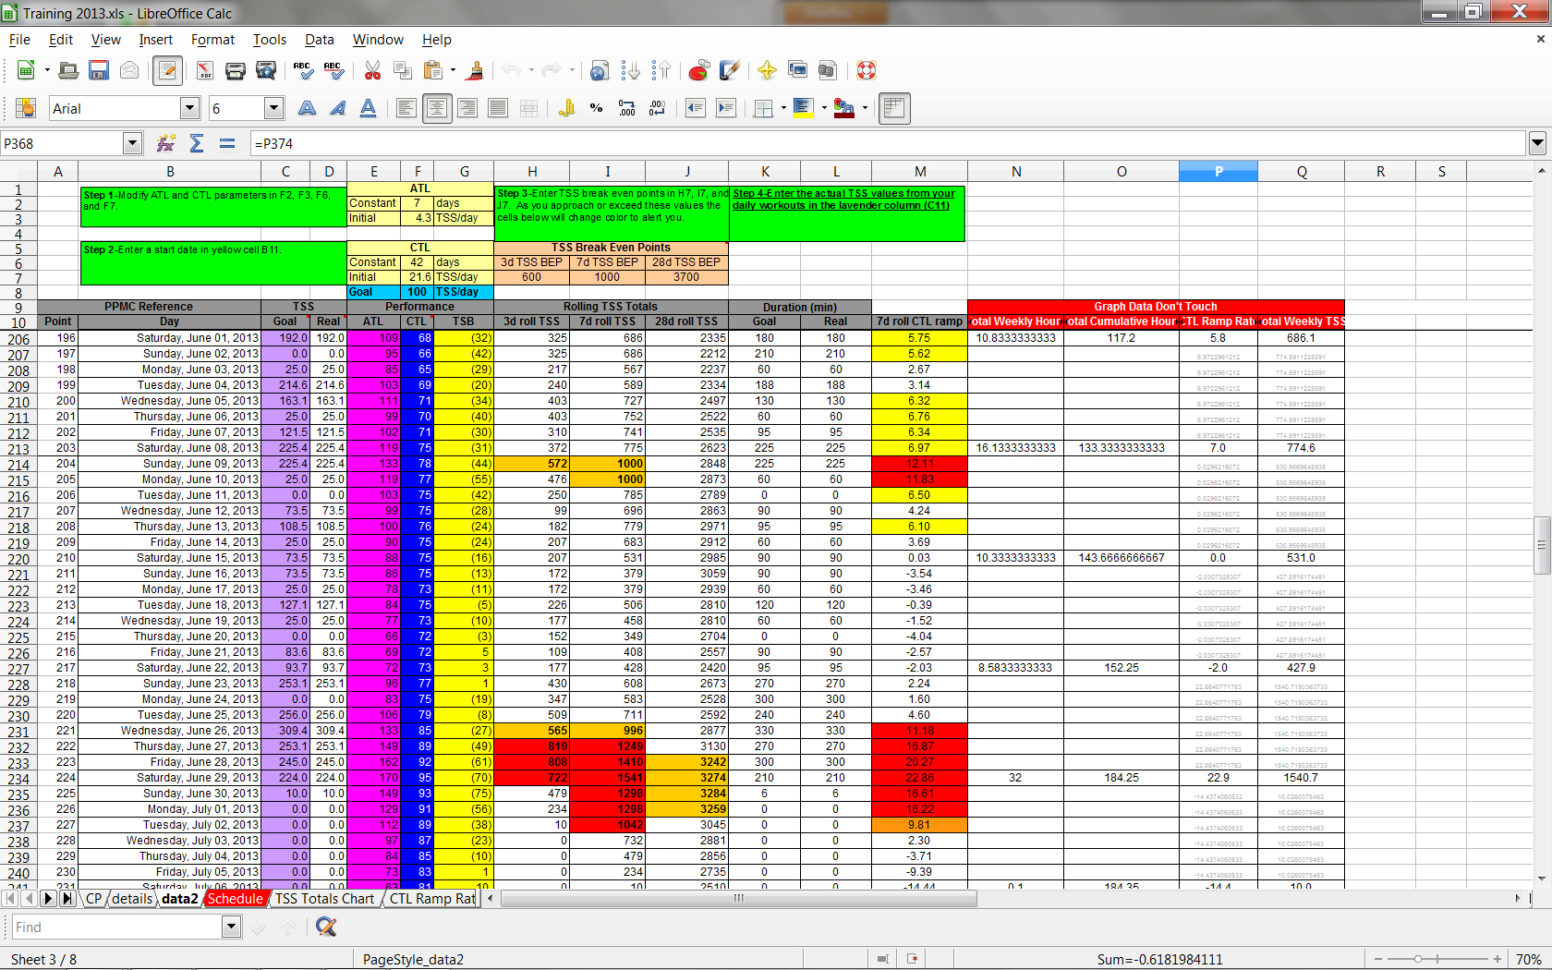 Microsoft Excel Spreadsheet Training With Regard To Microsoft Excel Spreadsheet Training On Excel Spreadsheet Templates